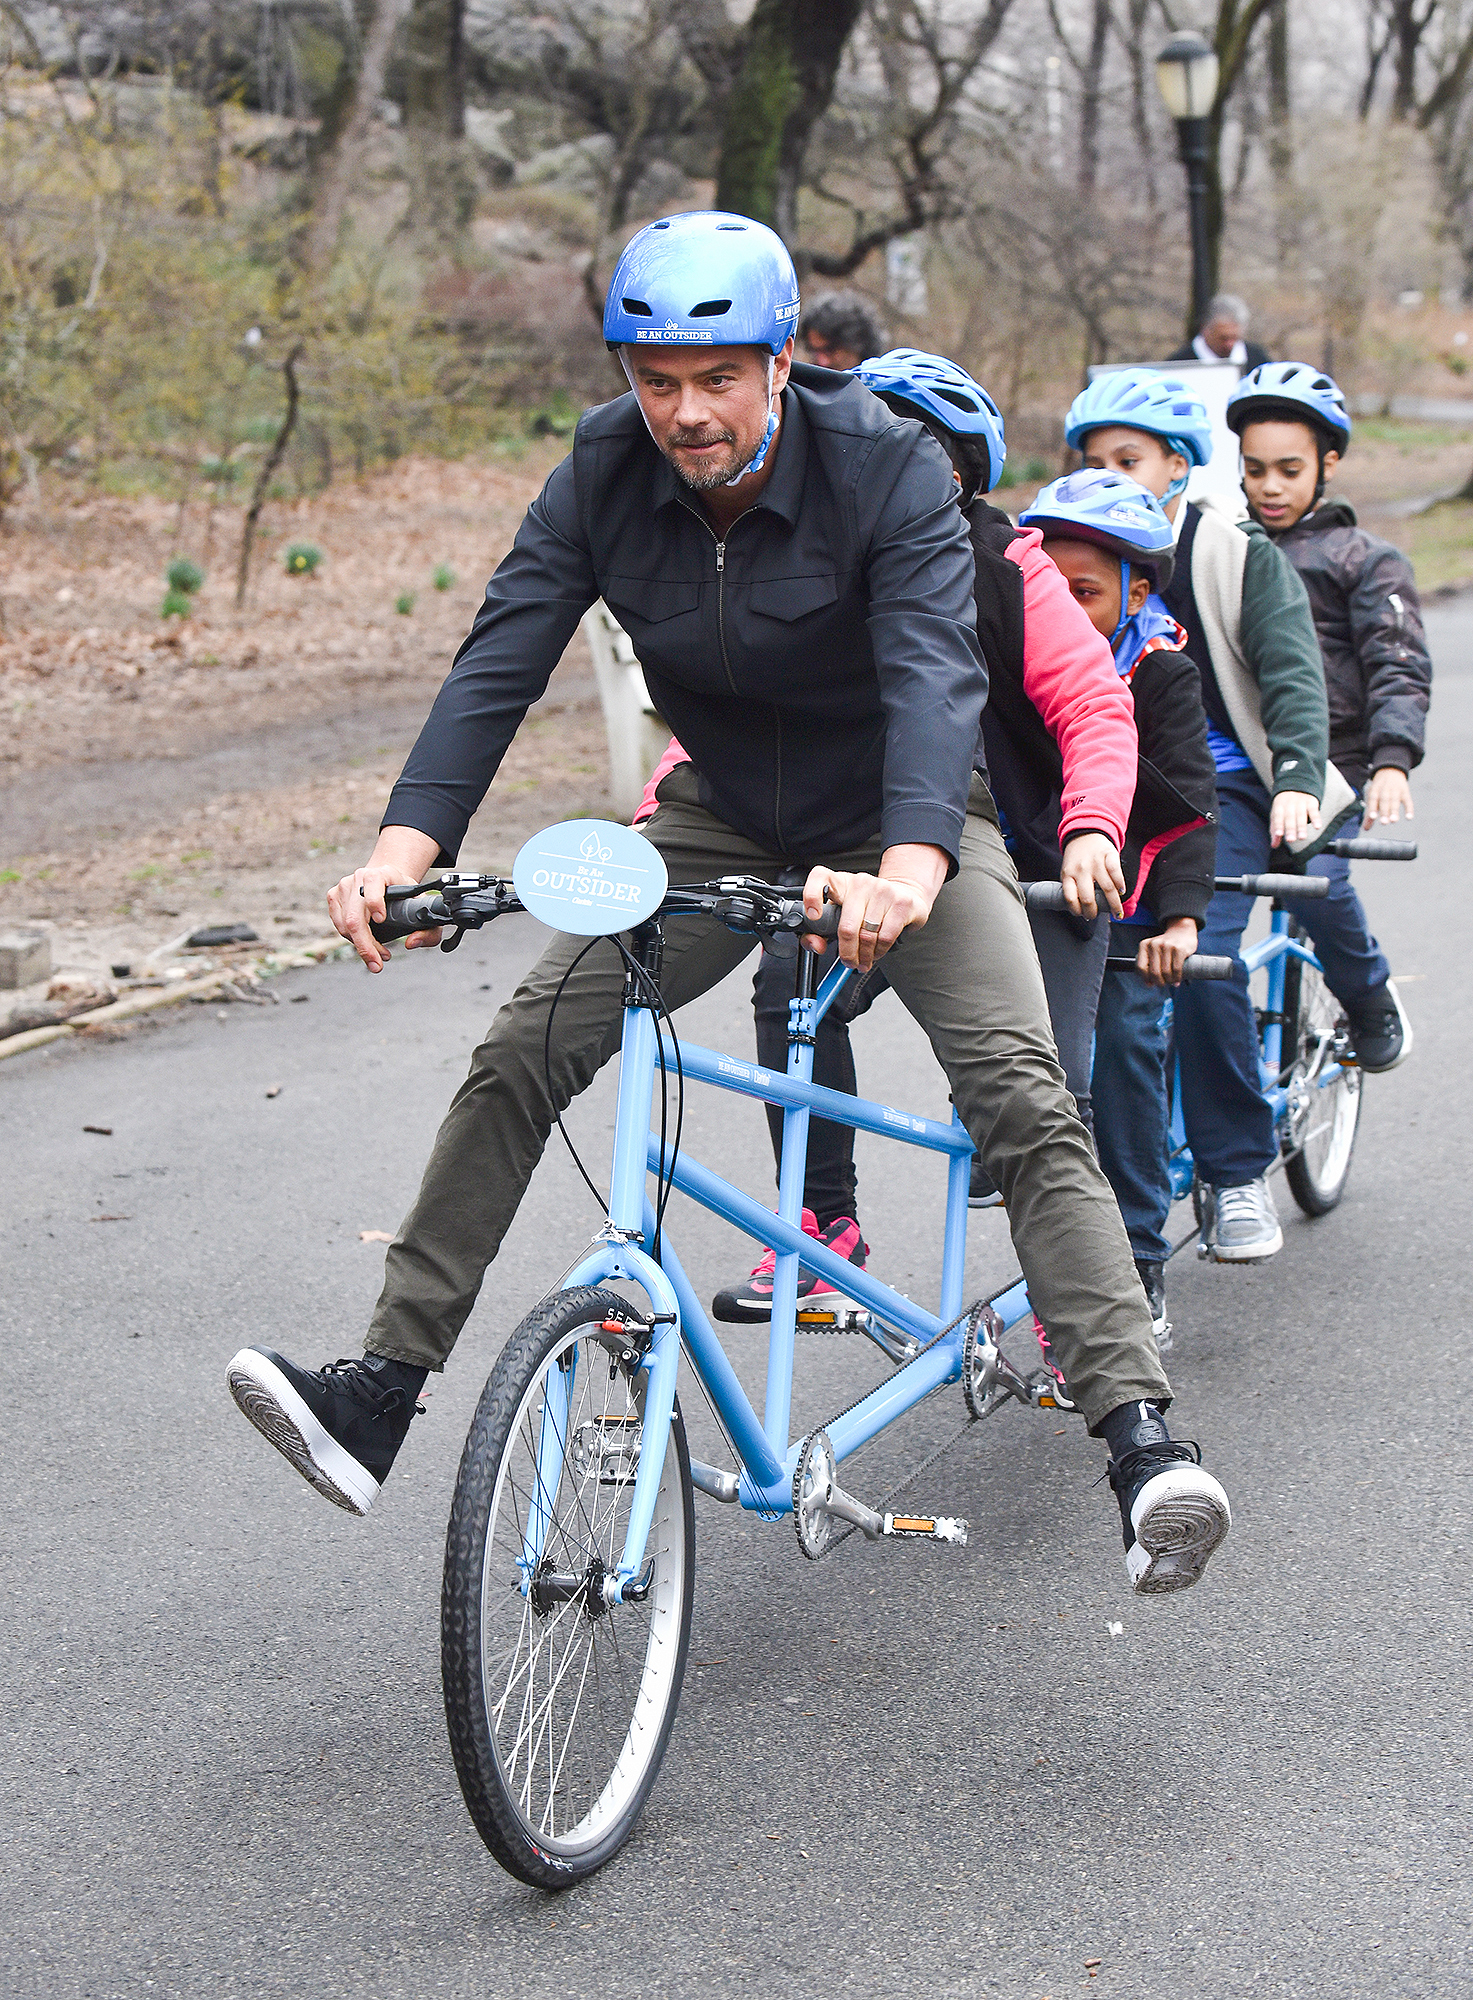 """Josh Duhamel Partners With Claritin And Boys & Girls Clubs Of America To Launch The """"Be An Outsider Campaign"""""""